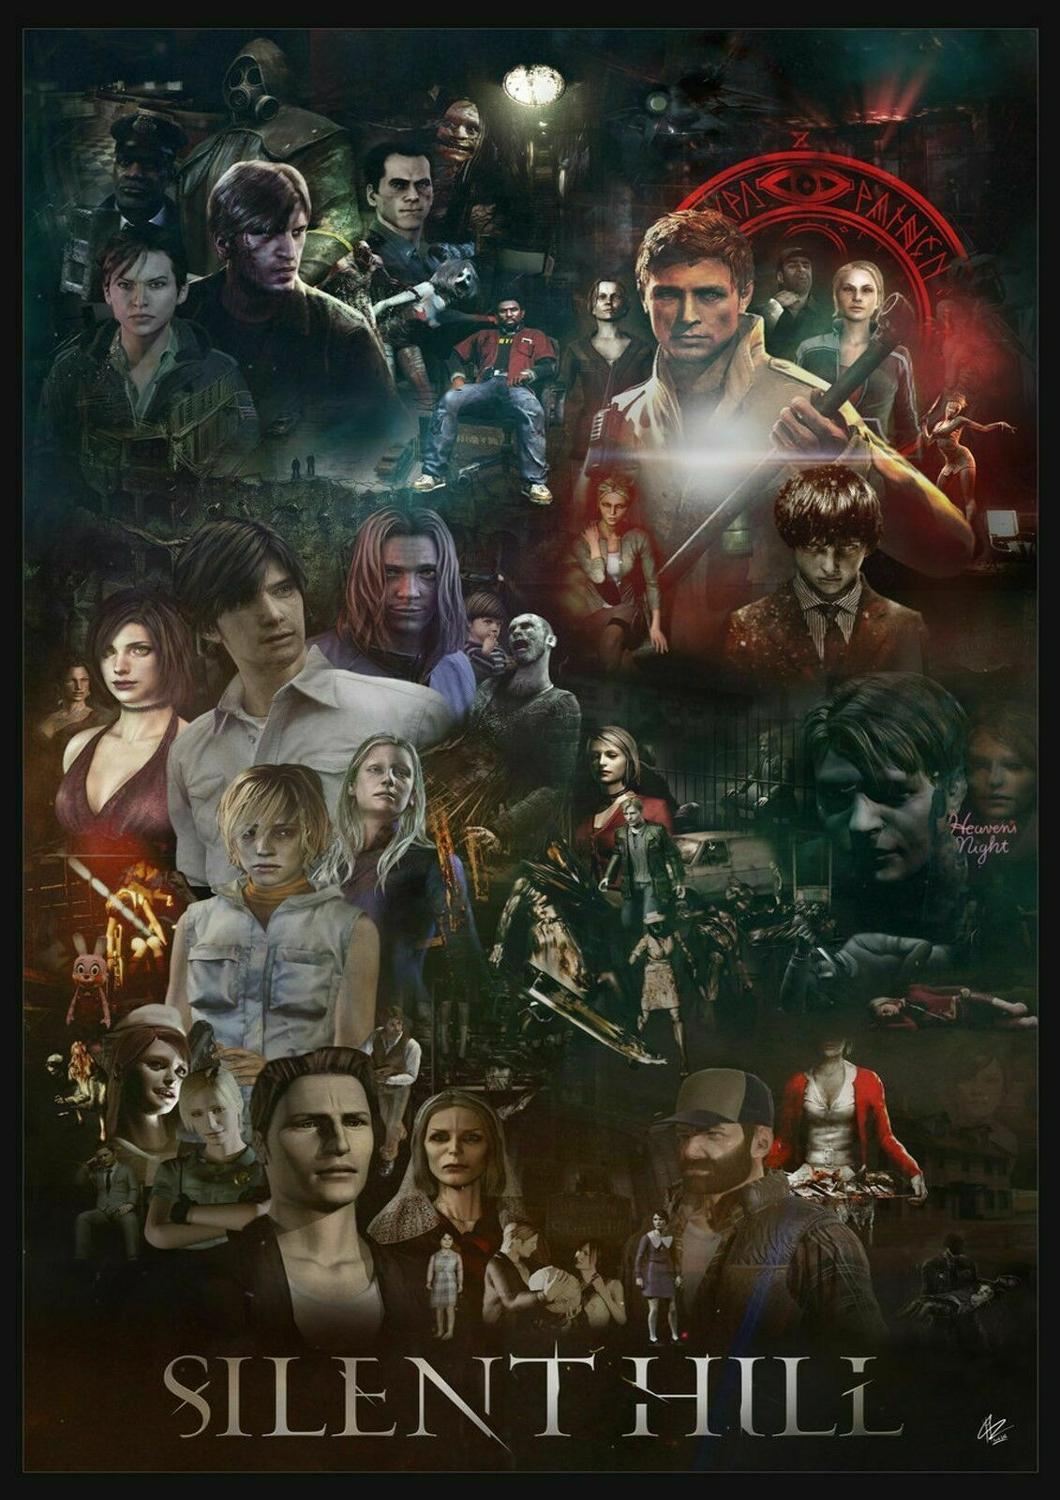 SILENT HILL Game Art Film Print Silk Poster Home Wall Decor 24x36inch image